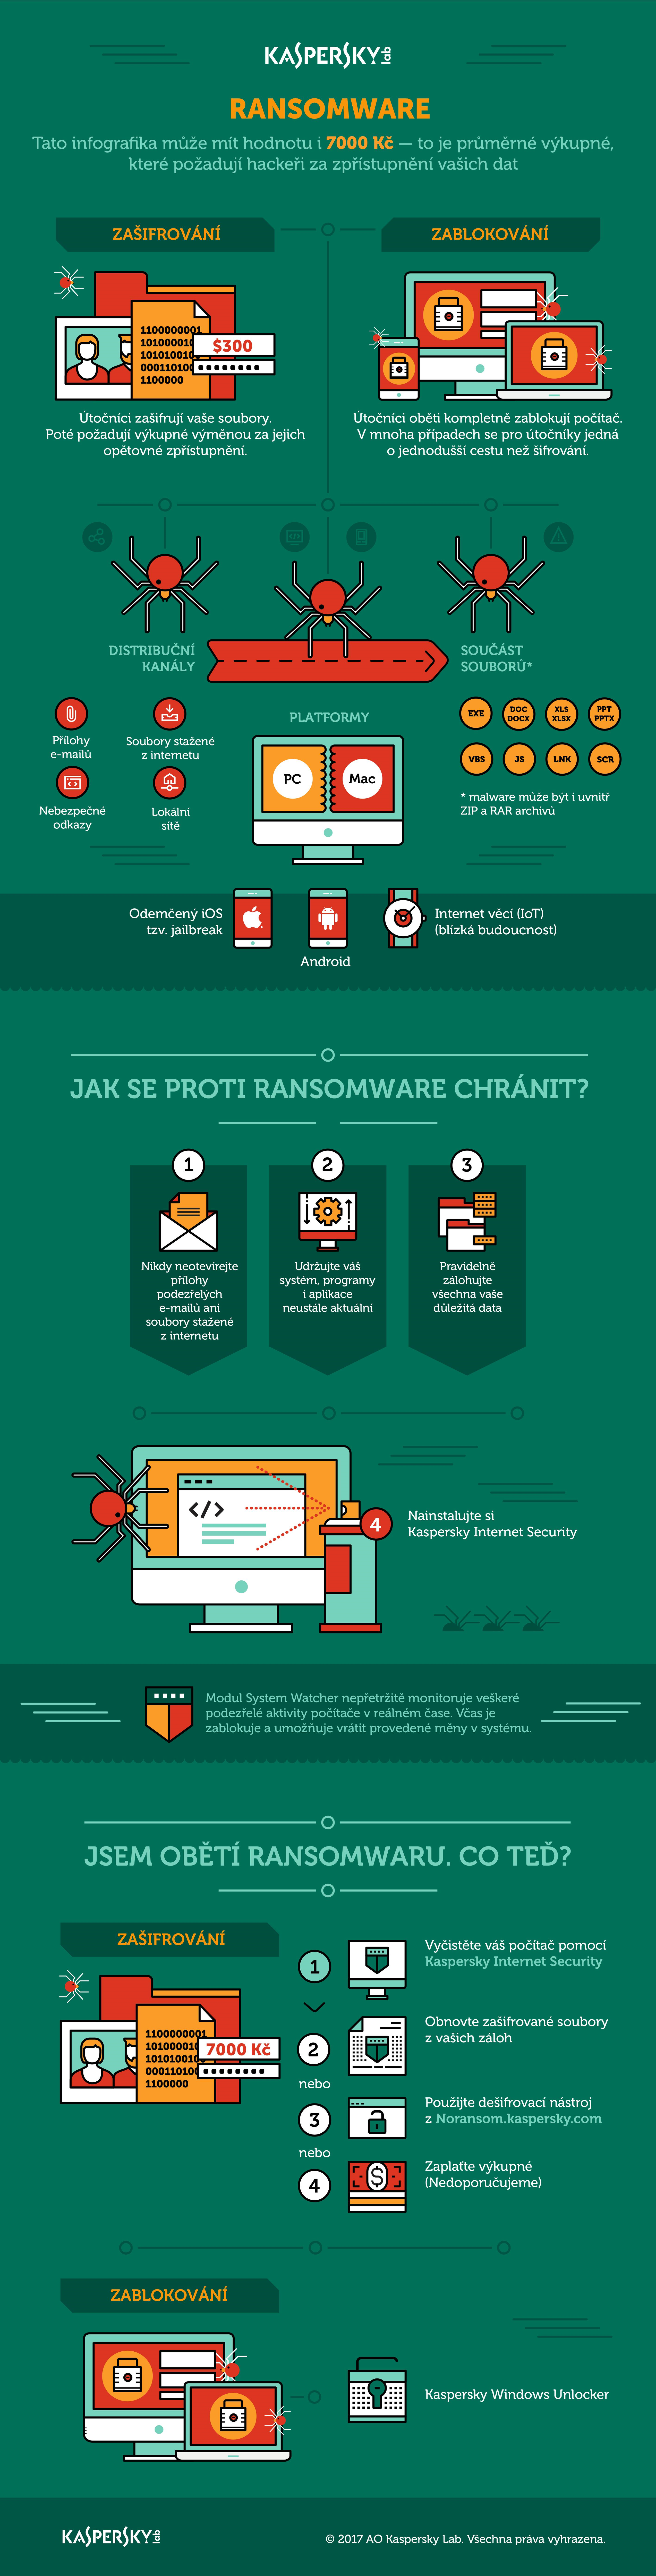 Infographic o ransomware